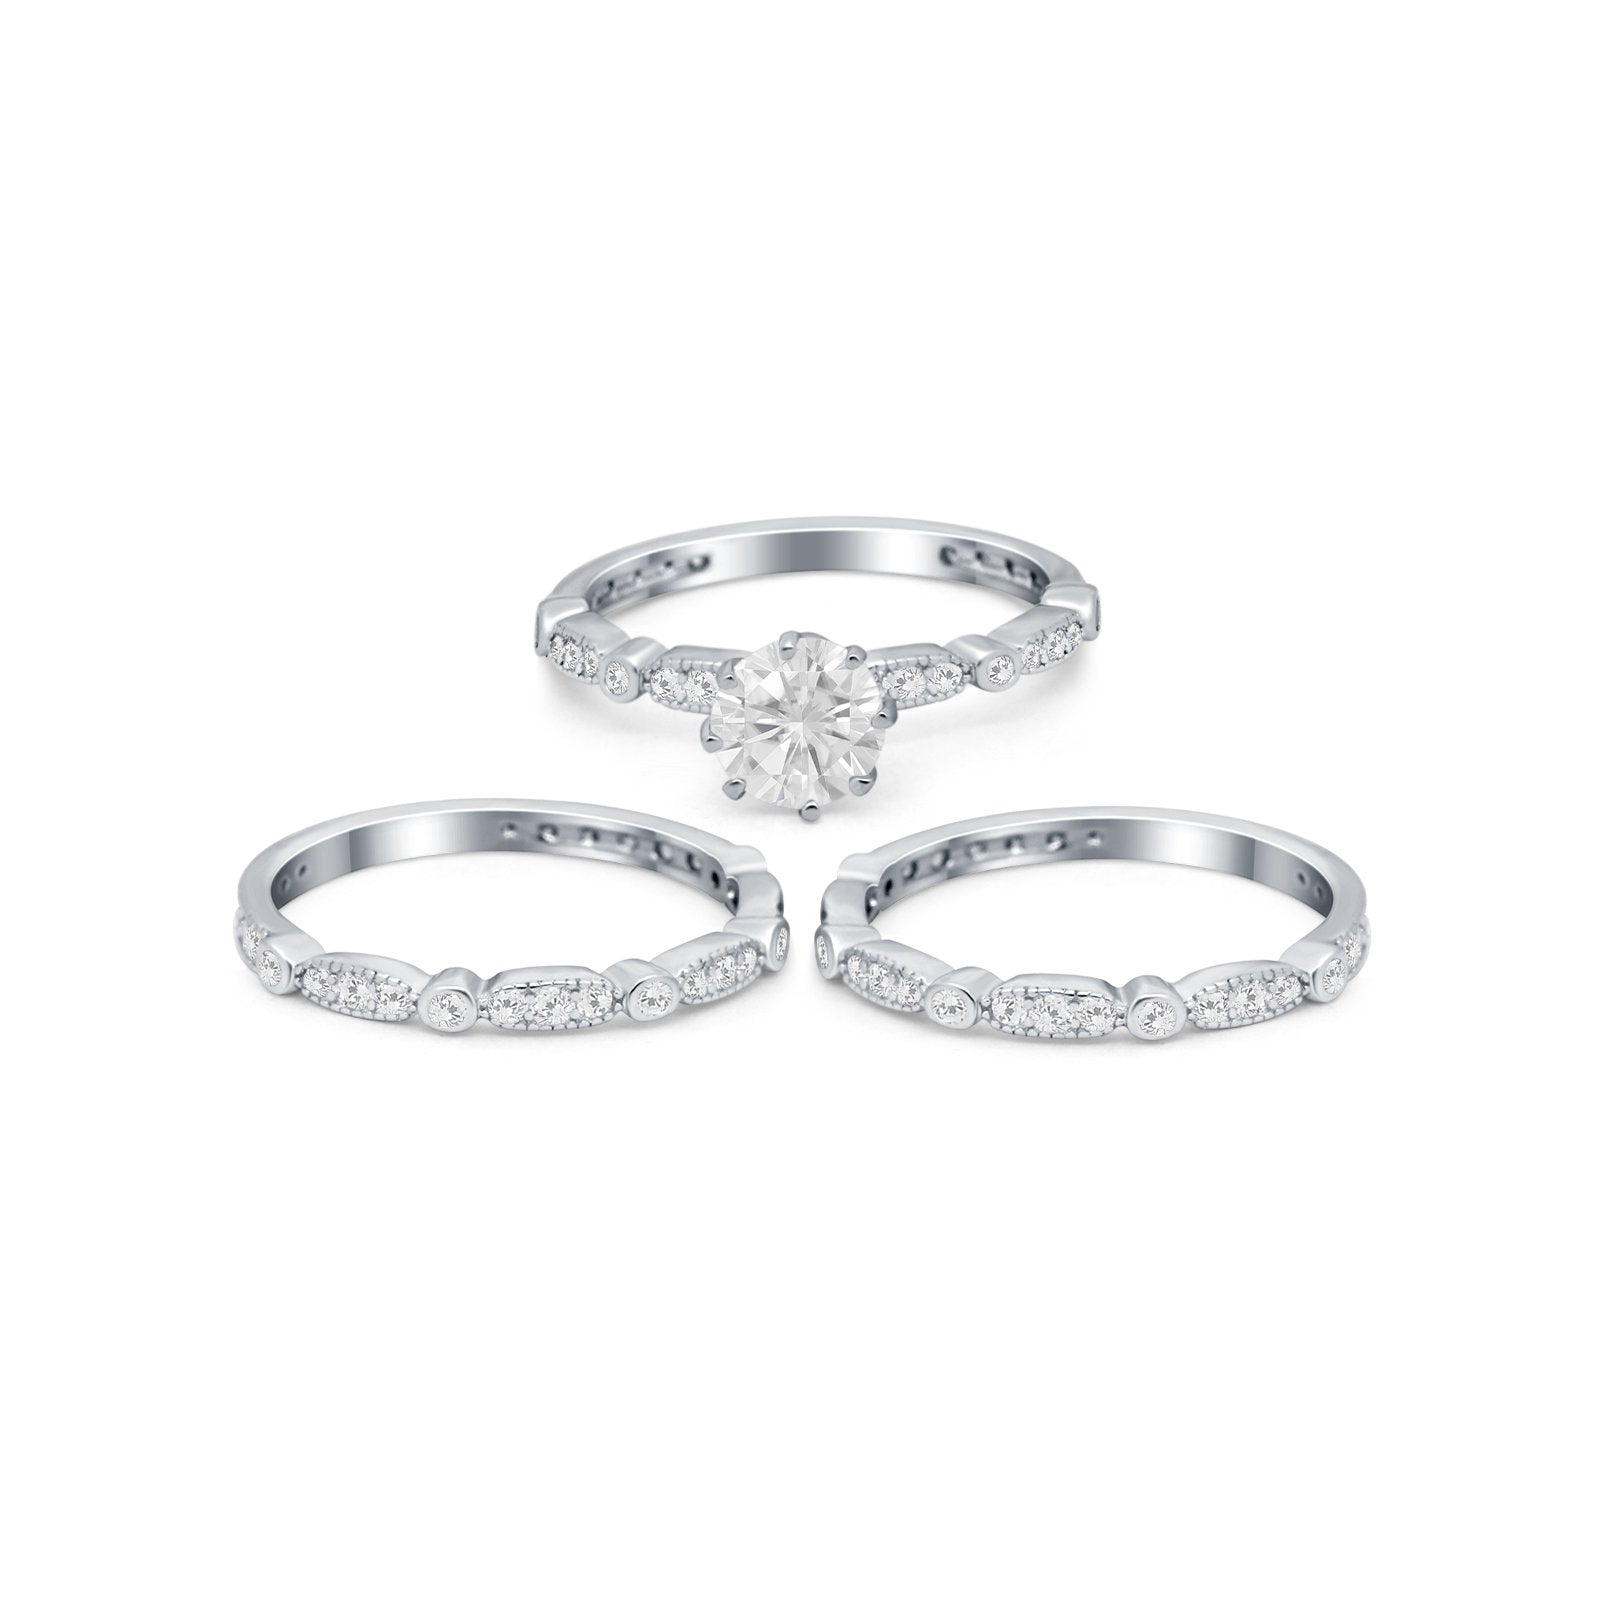 Three Piece Bridal Vintage Round Simulated Cubic Zirconia Ring 925 Sterling Silver